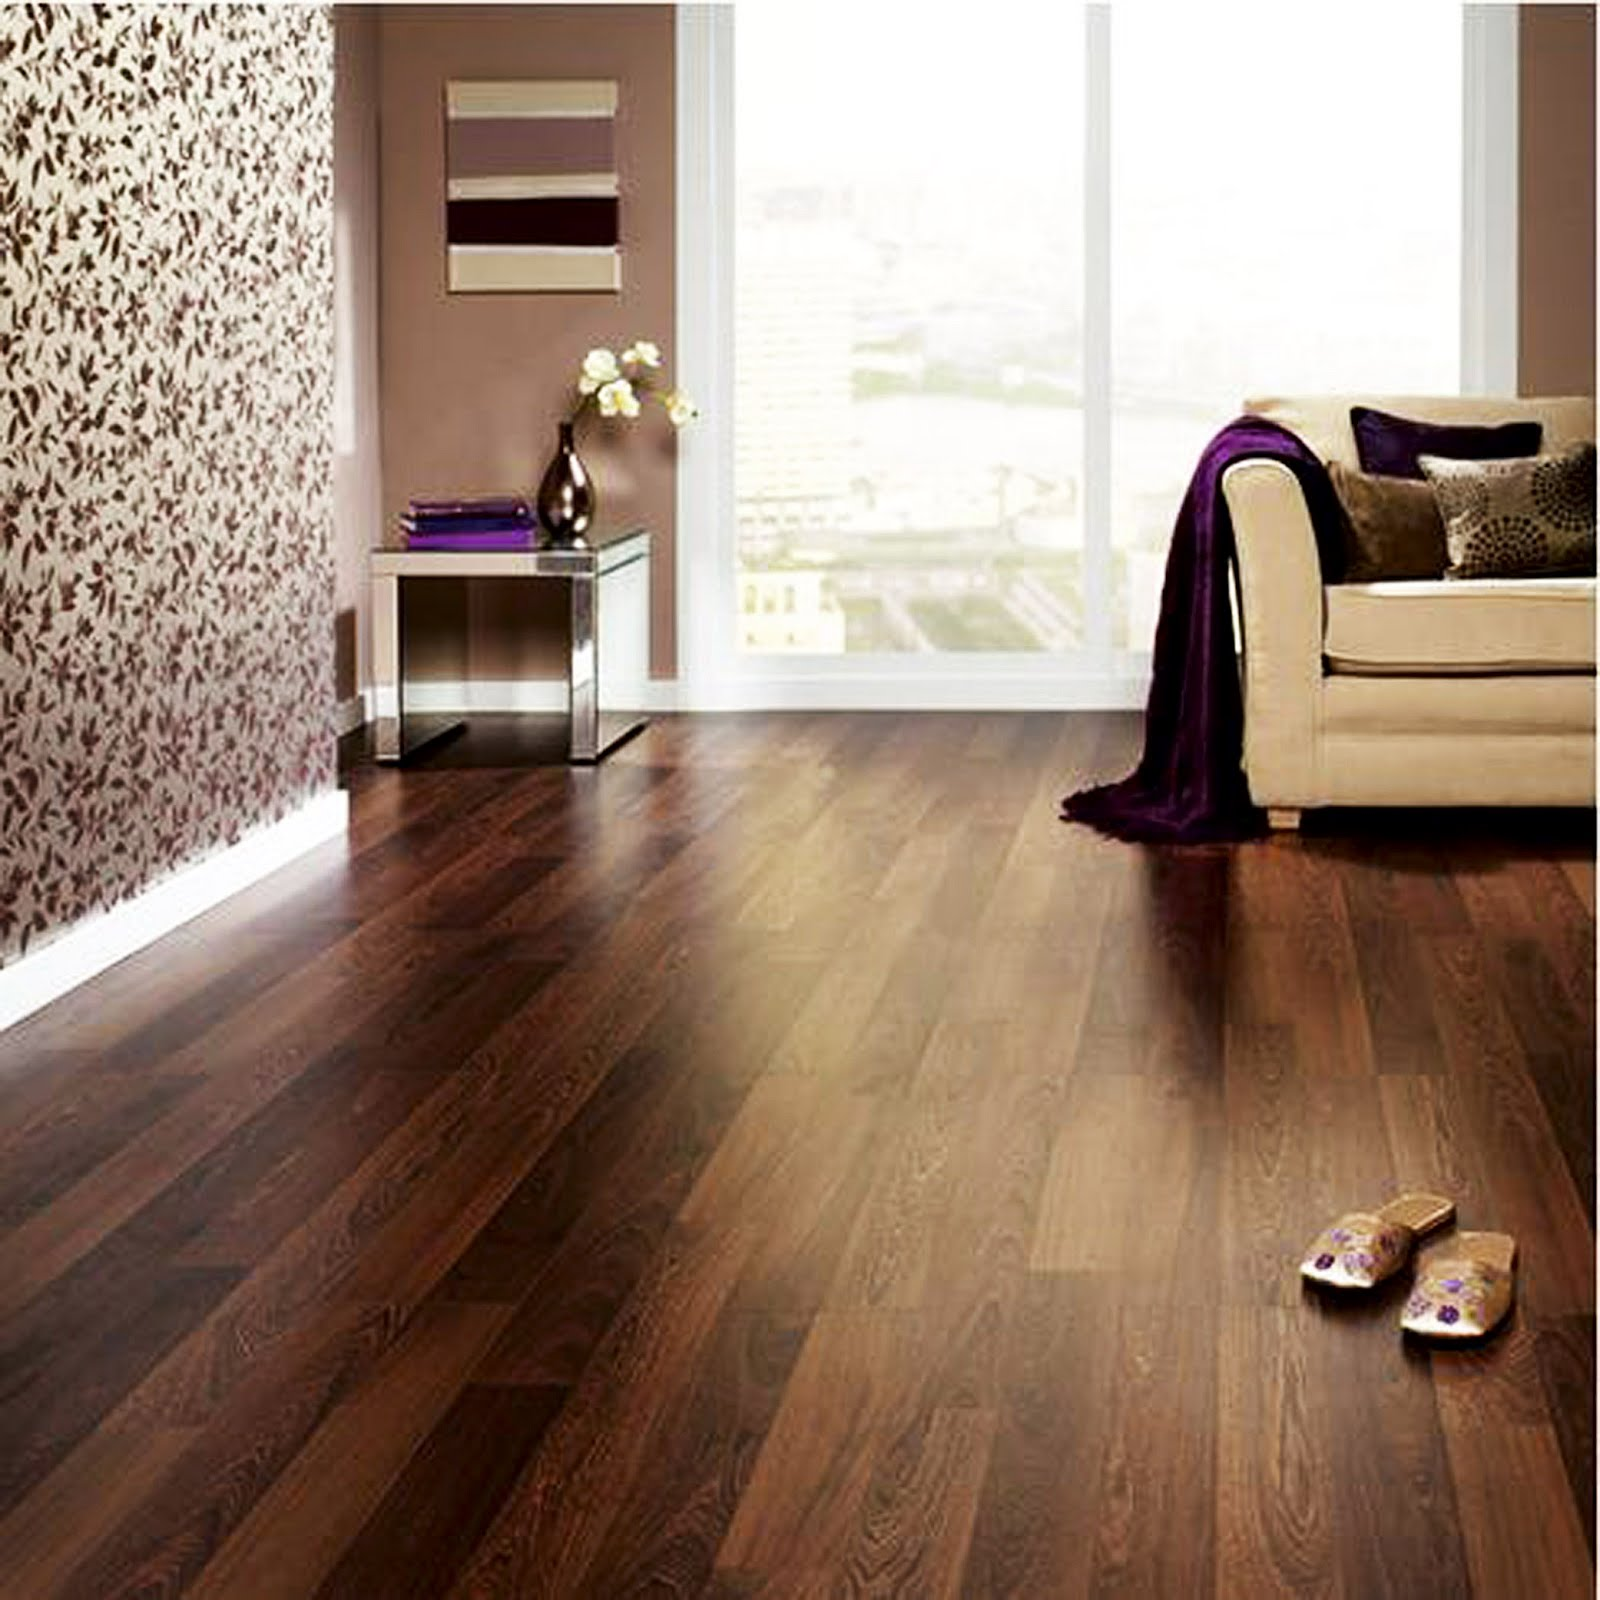 Choosing Laminate Floor A Buyers Guide Swift Carpets Flooring - What to look for in laminate wood flooring